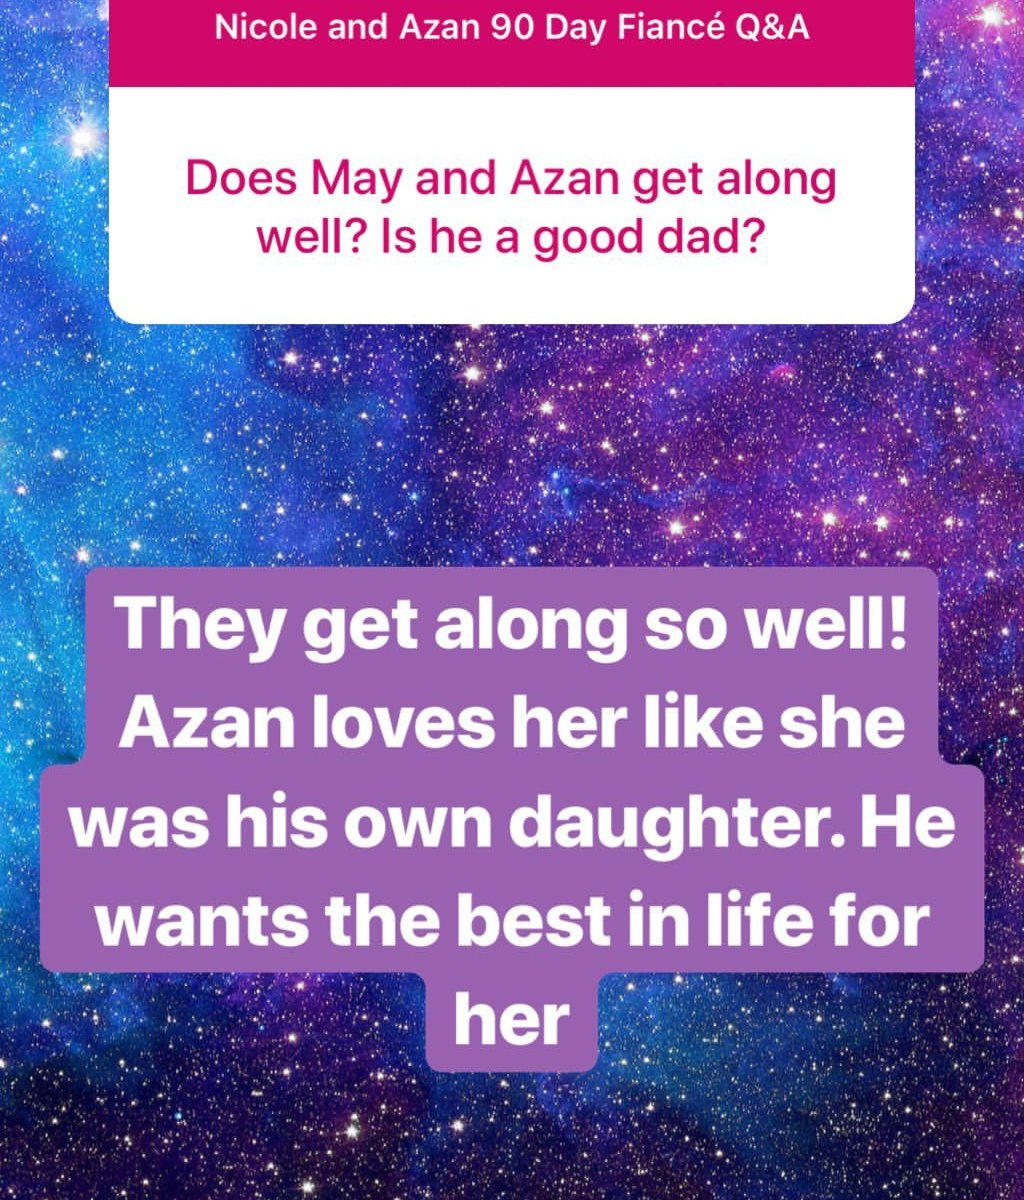 90 Day Fiance': Nicole Says Azan Is a Good Daddy to Daughter